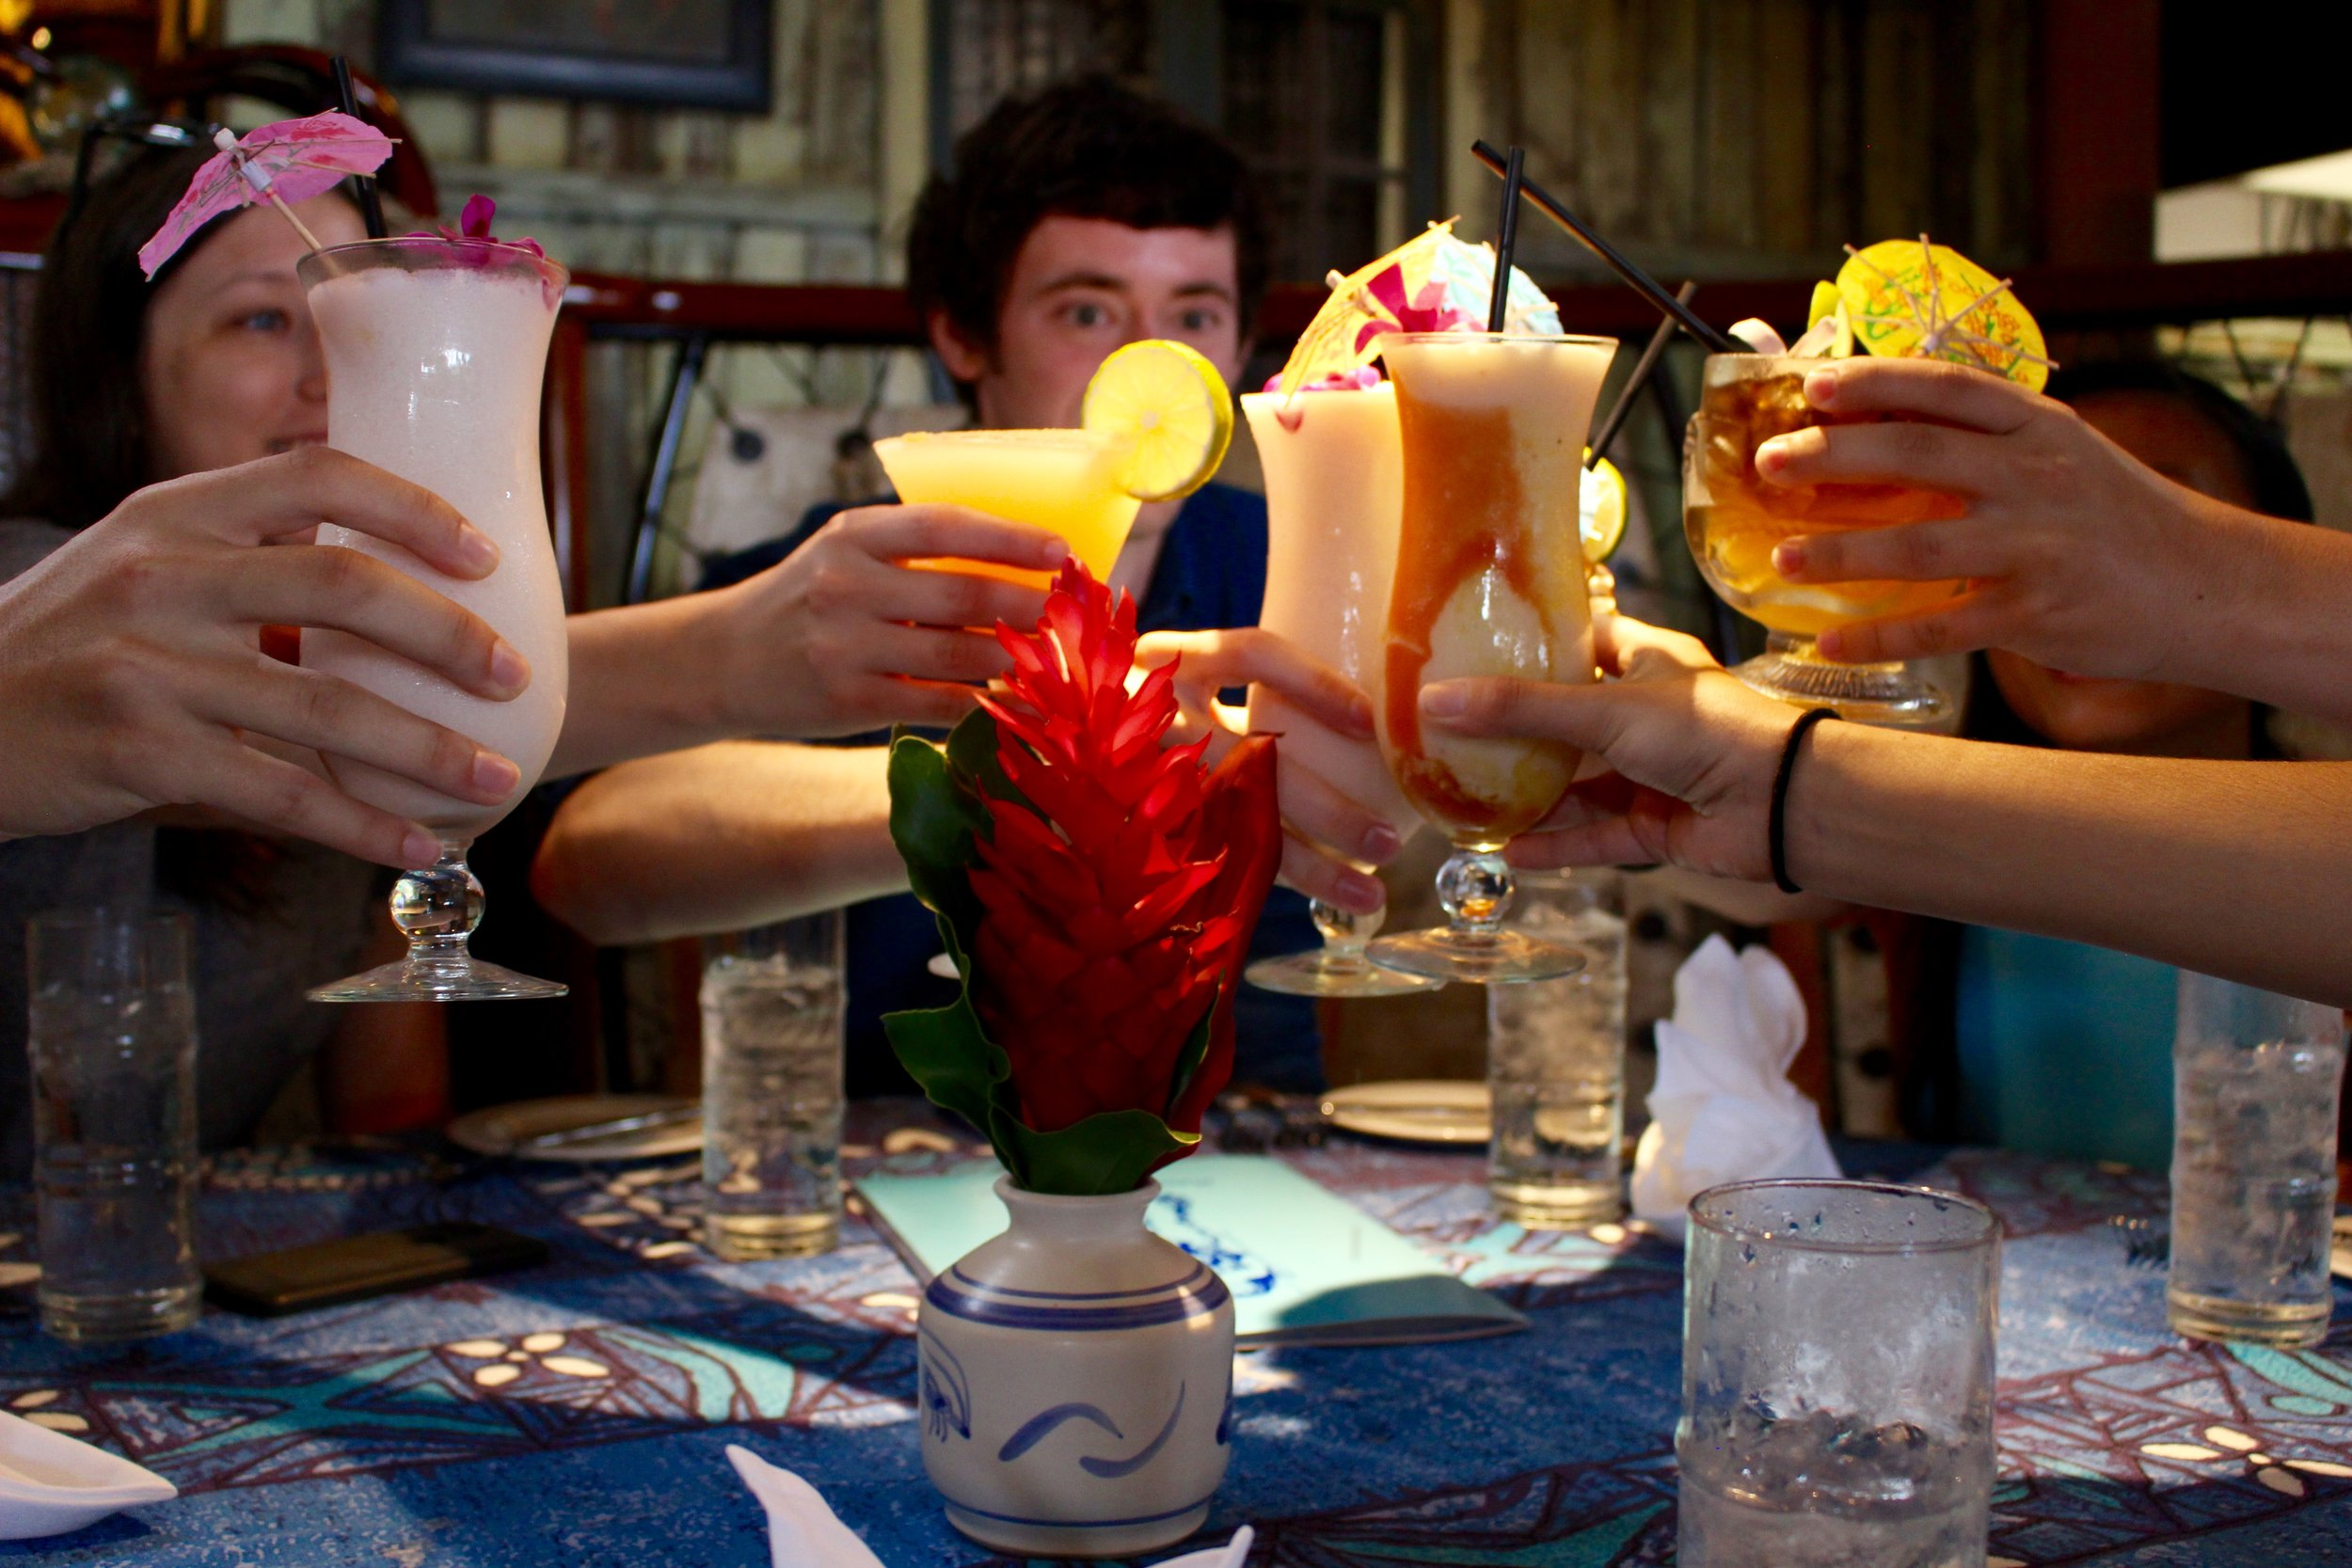 Cheers to the beginning of an incredible meal.